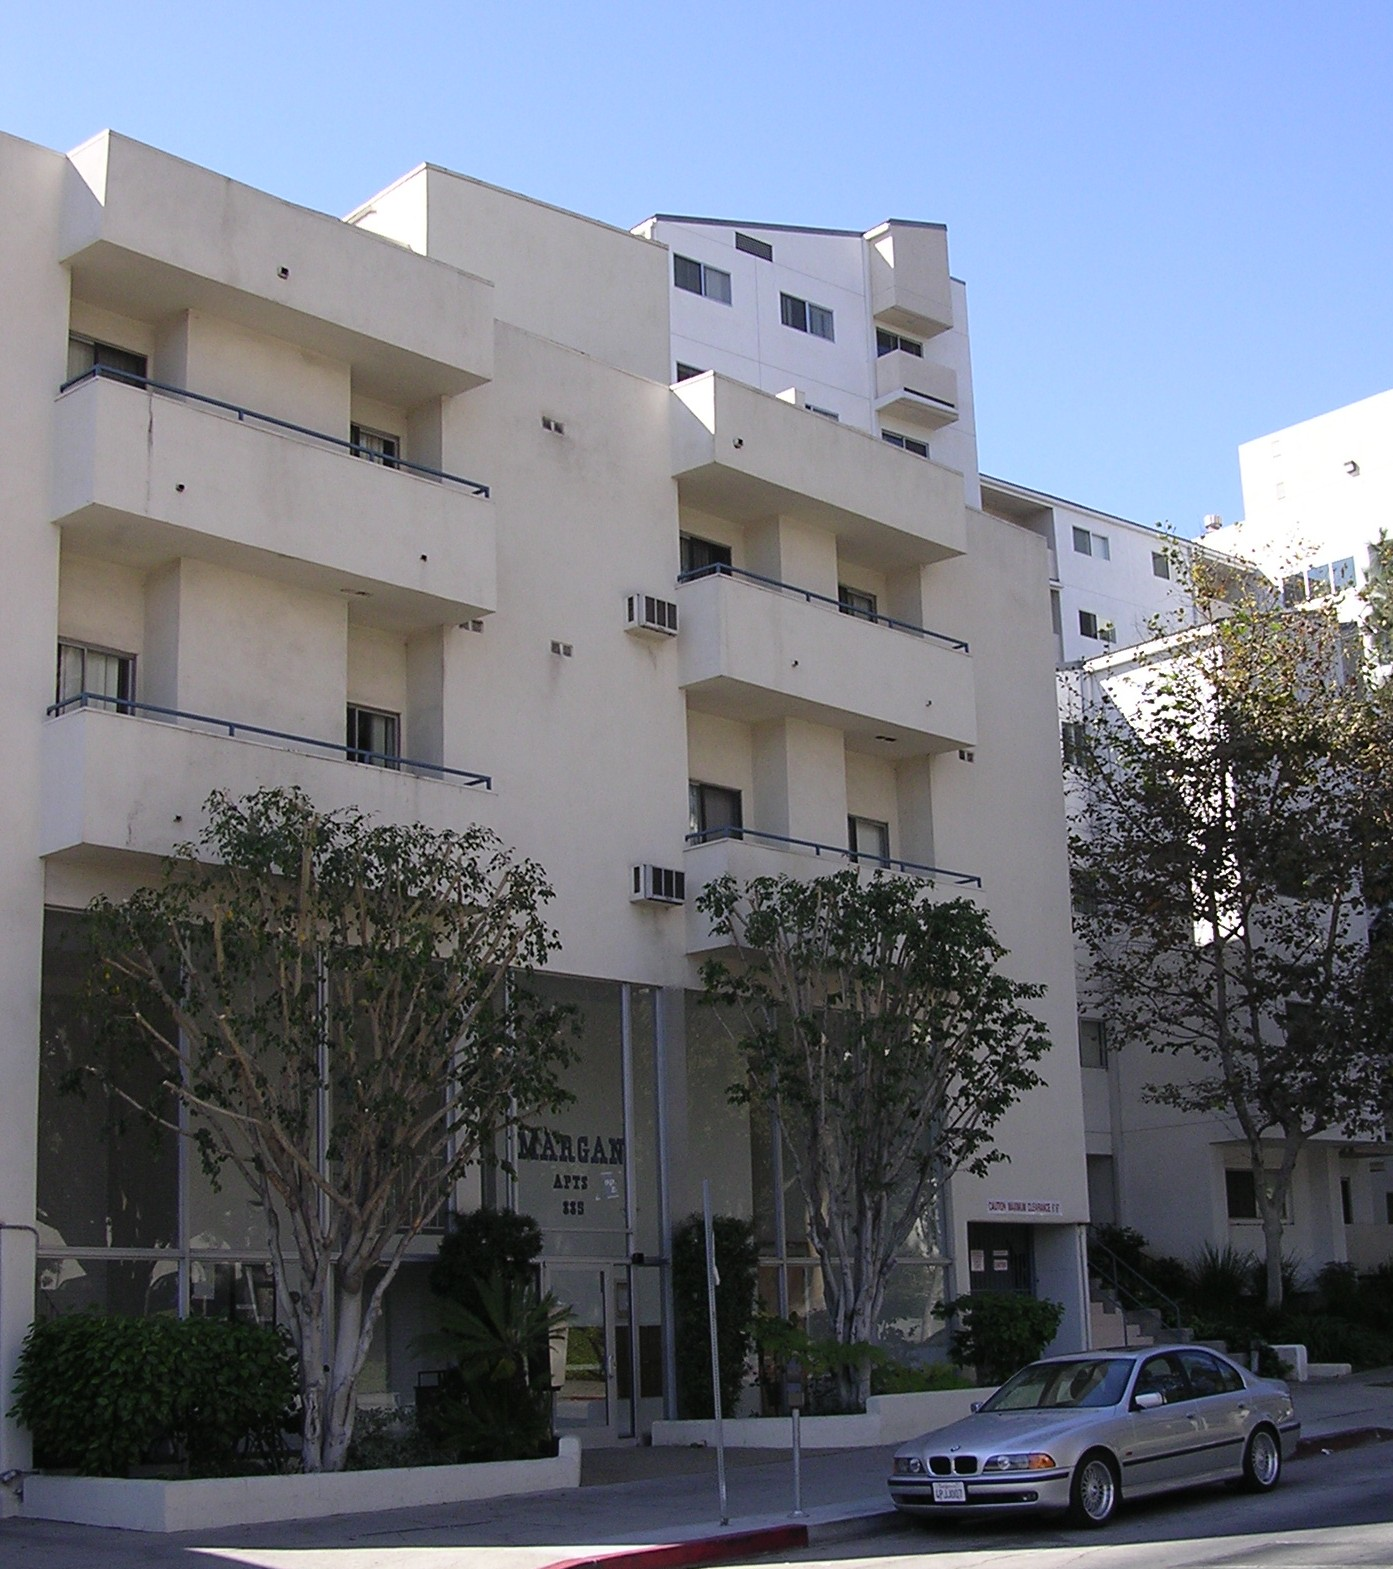 Studio Apartment Ucla ucla campus map: margan apartments; margan apts - 885 levering ave